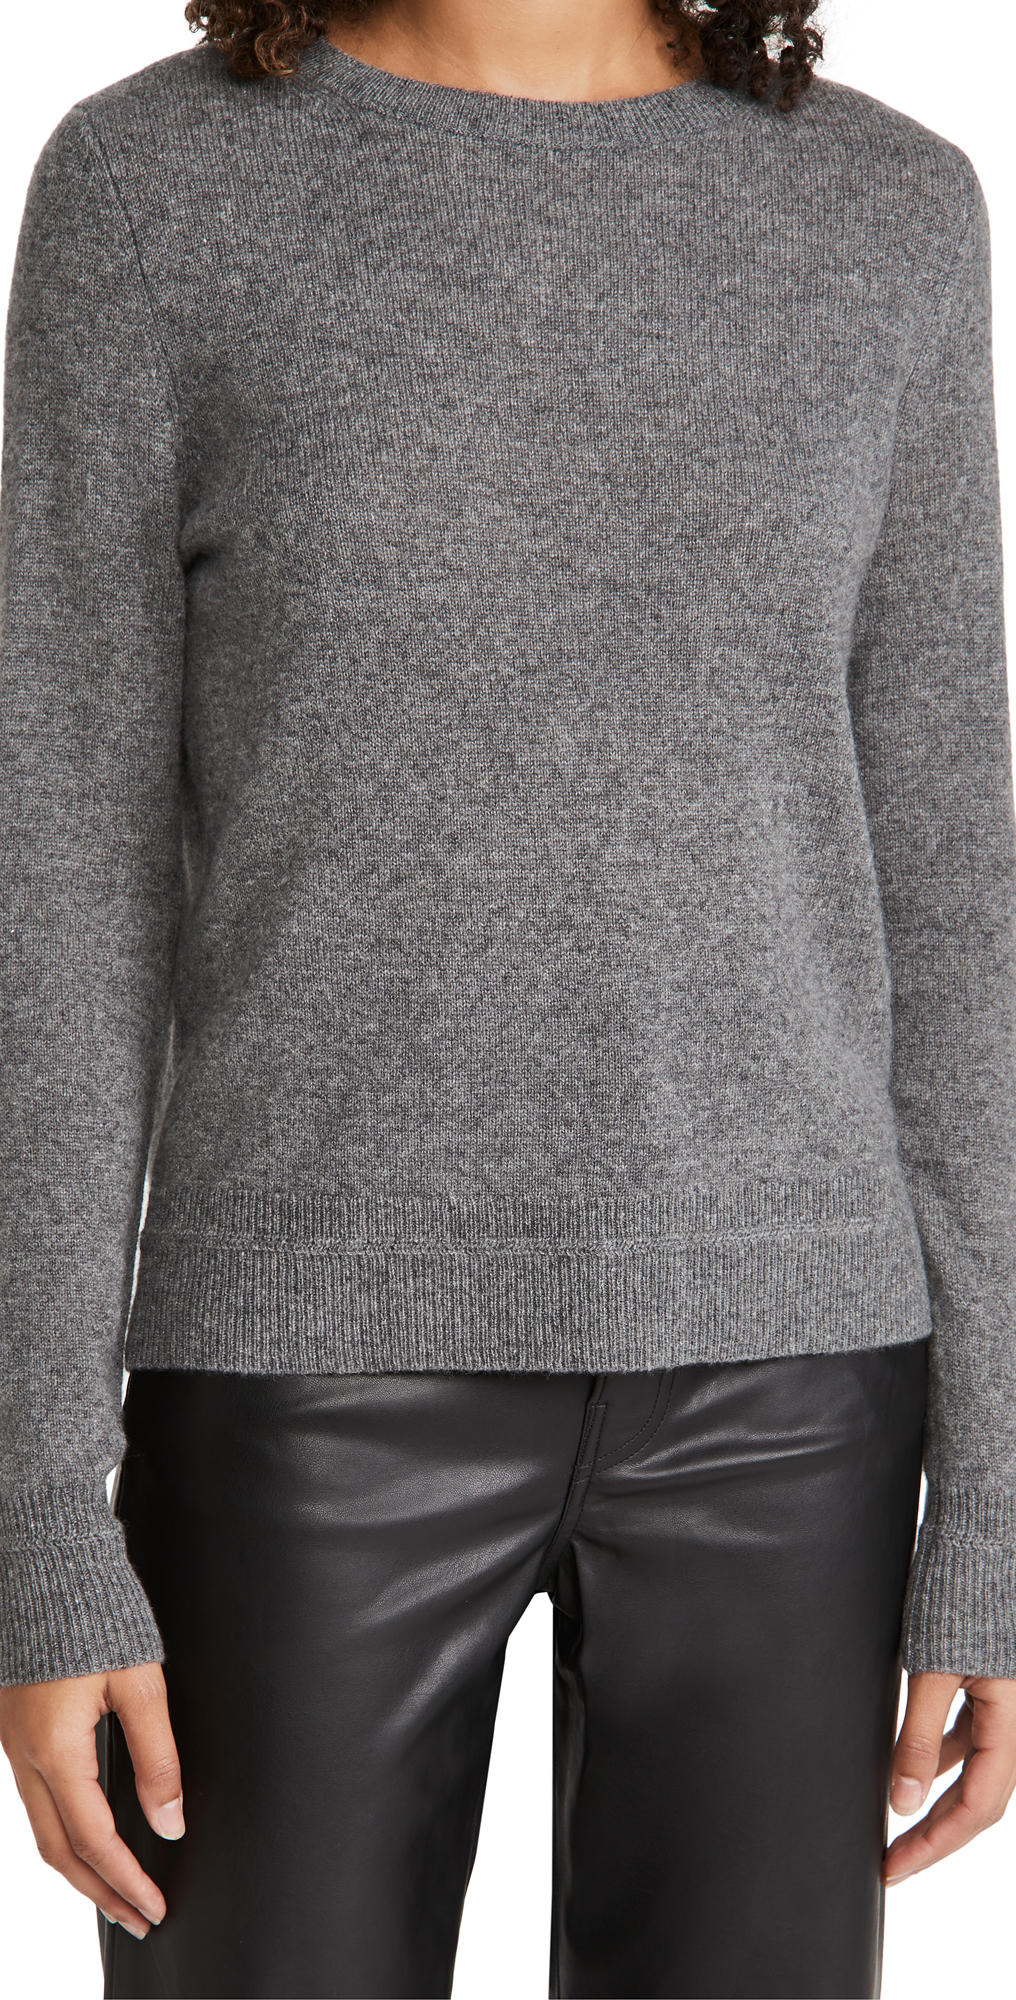 360 SWEATER Leila Cashmere Pullover